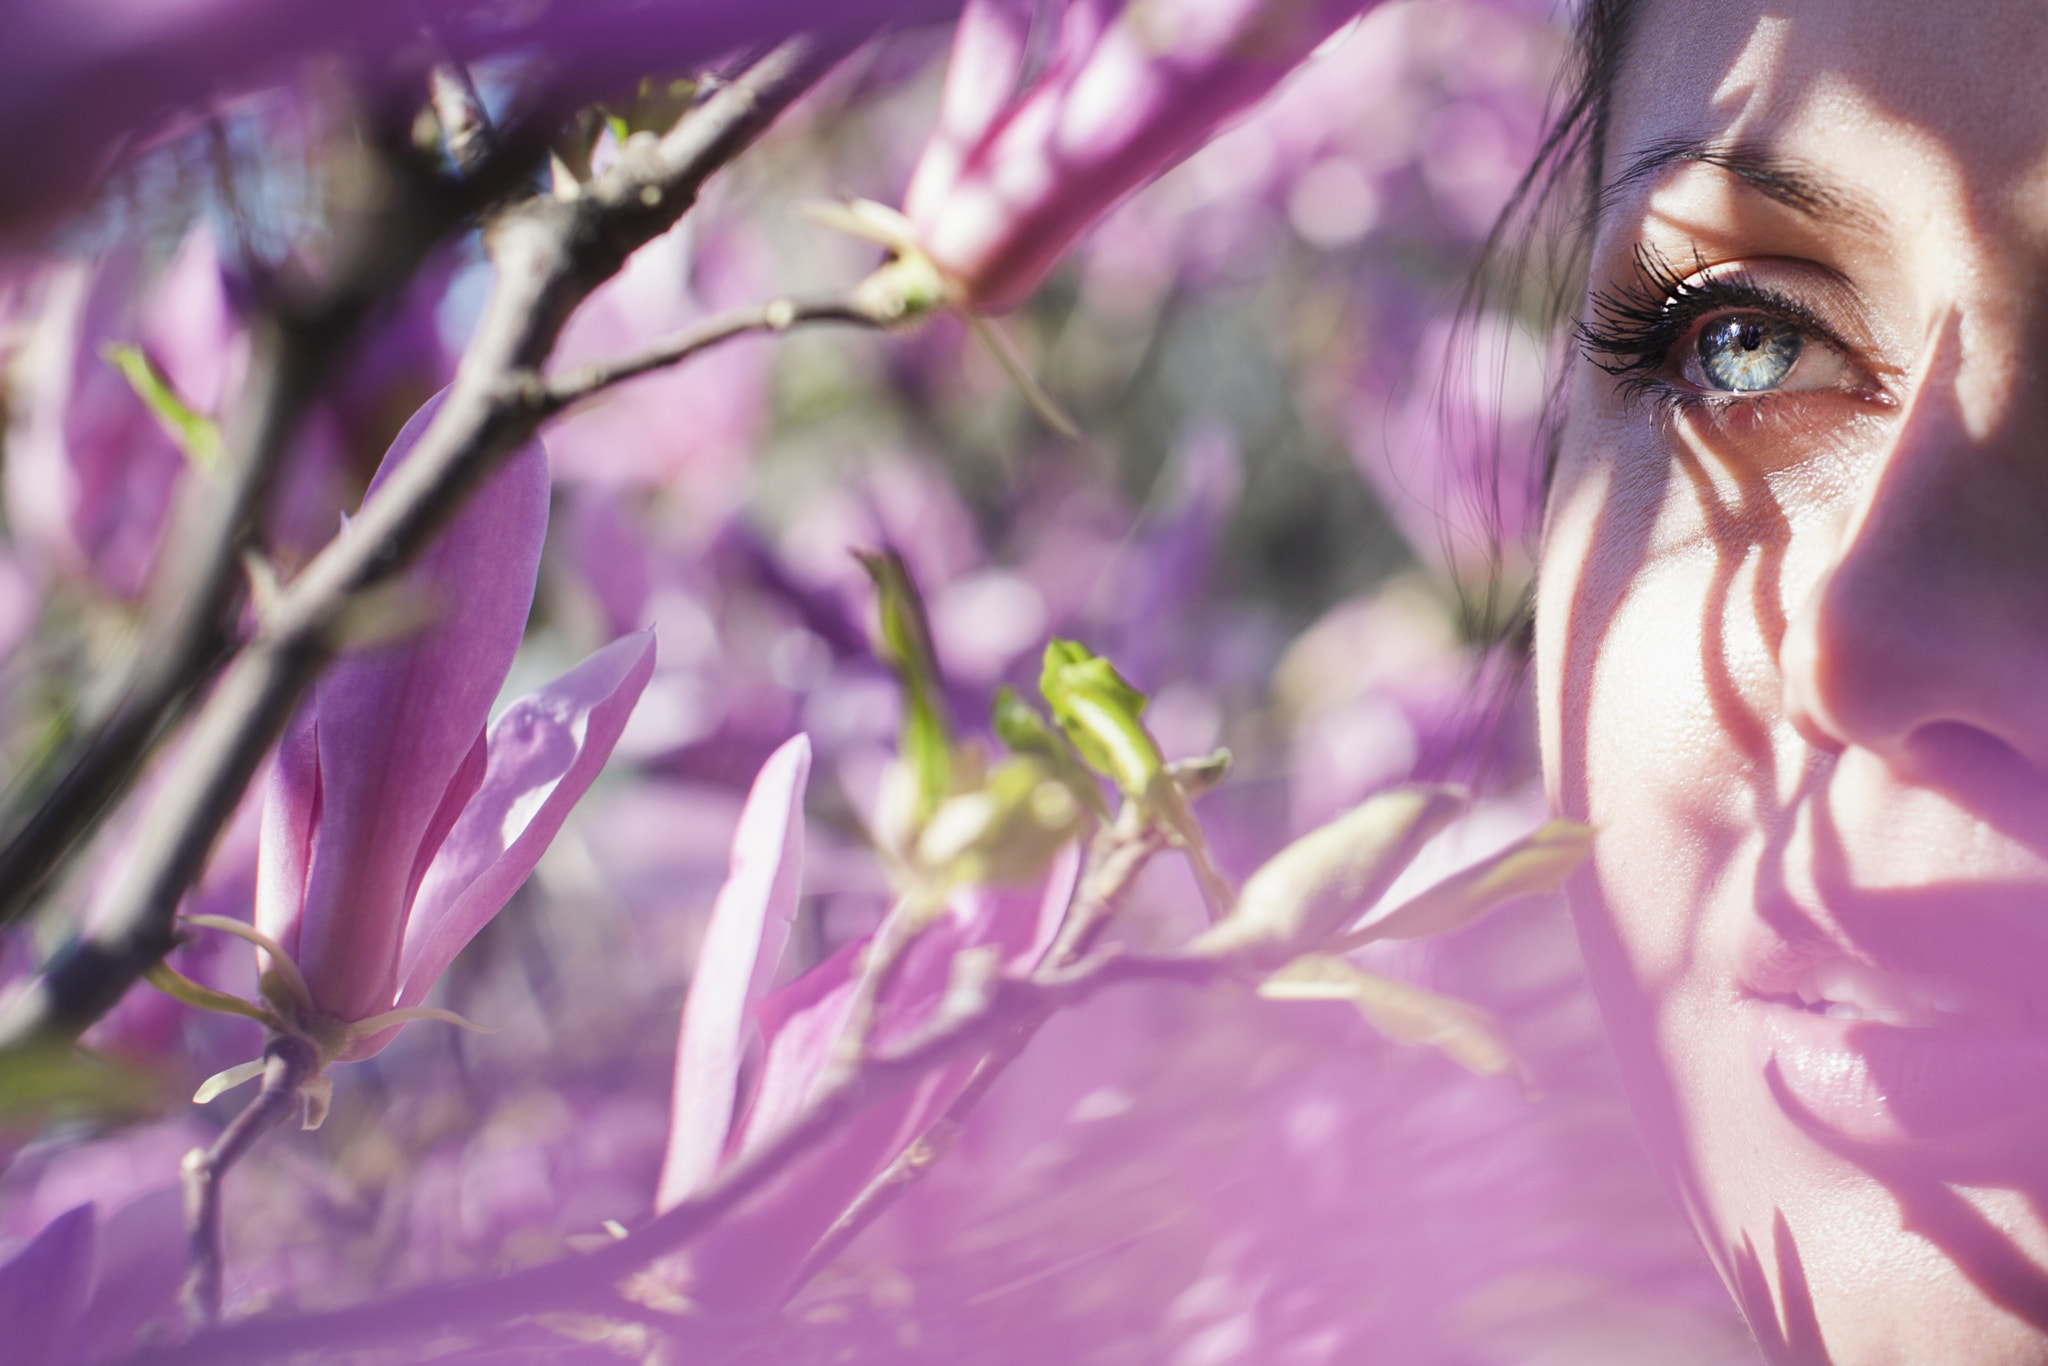 Photograph Spring in her eyes by Maja Topčagić on 500px